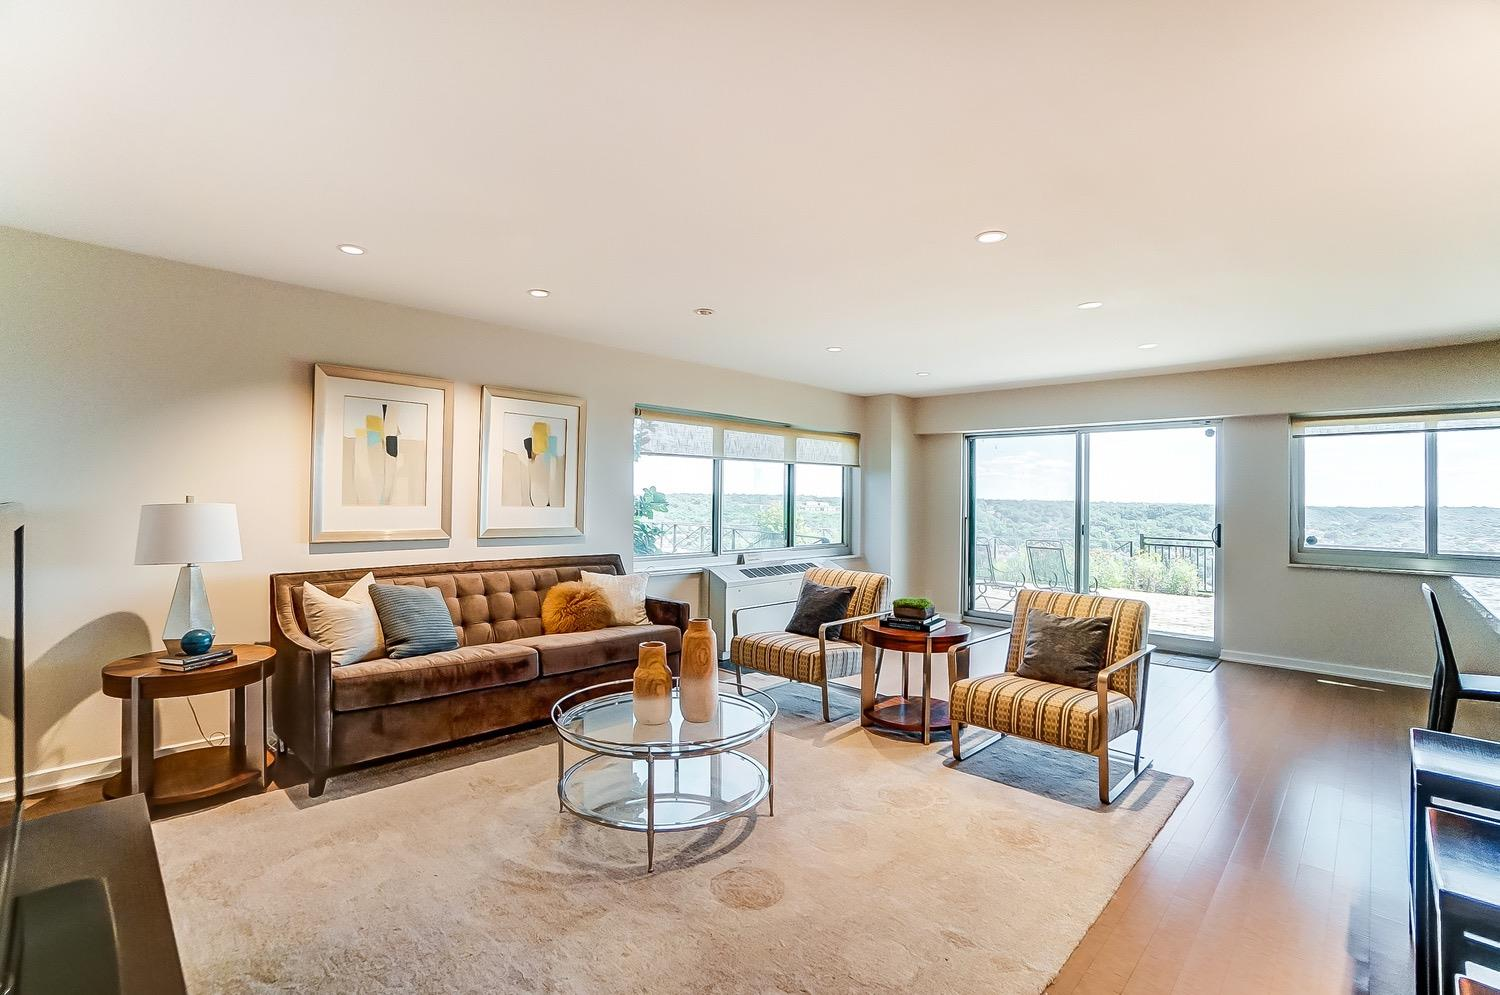 Abundant natural light streams through the oversized newer replacement picture windows and slider and provide an incredible river view and access to the enormous outdoor space. This end unit has windows on 3 sides such as the window on the left. Newer bamboo flooring ad recessed lighting.